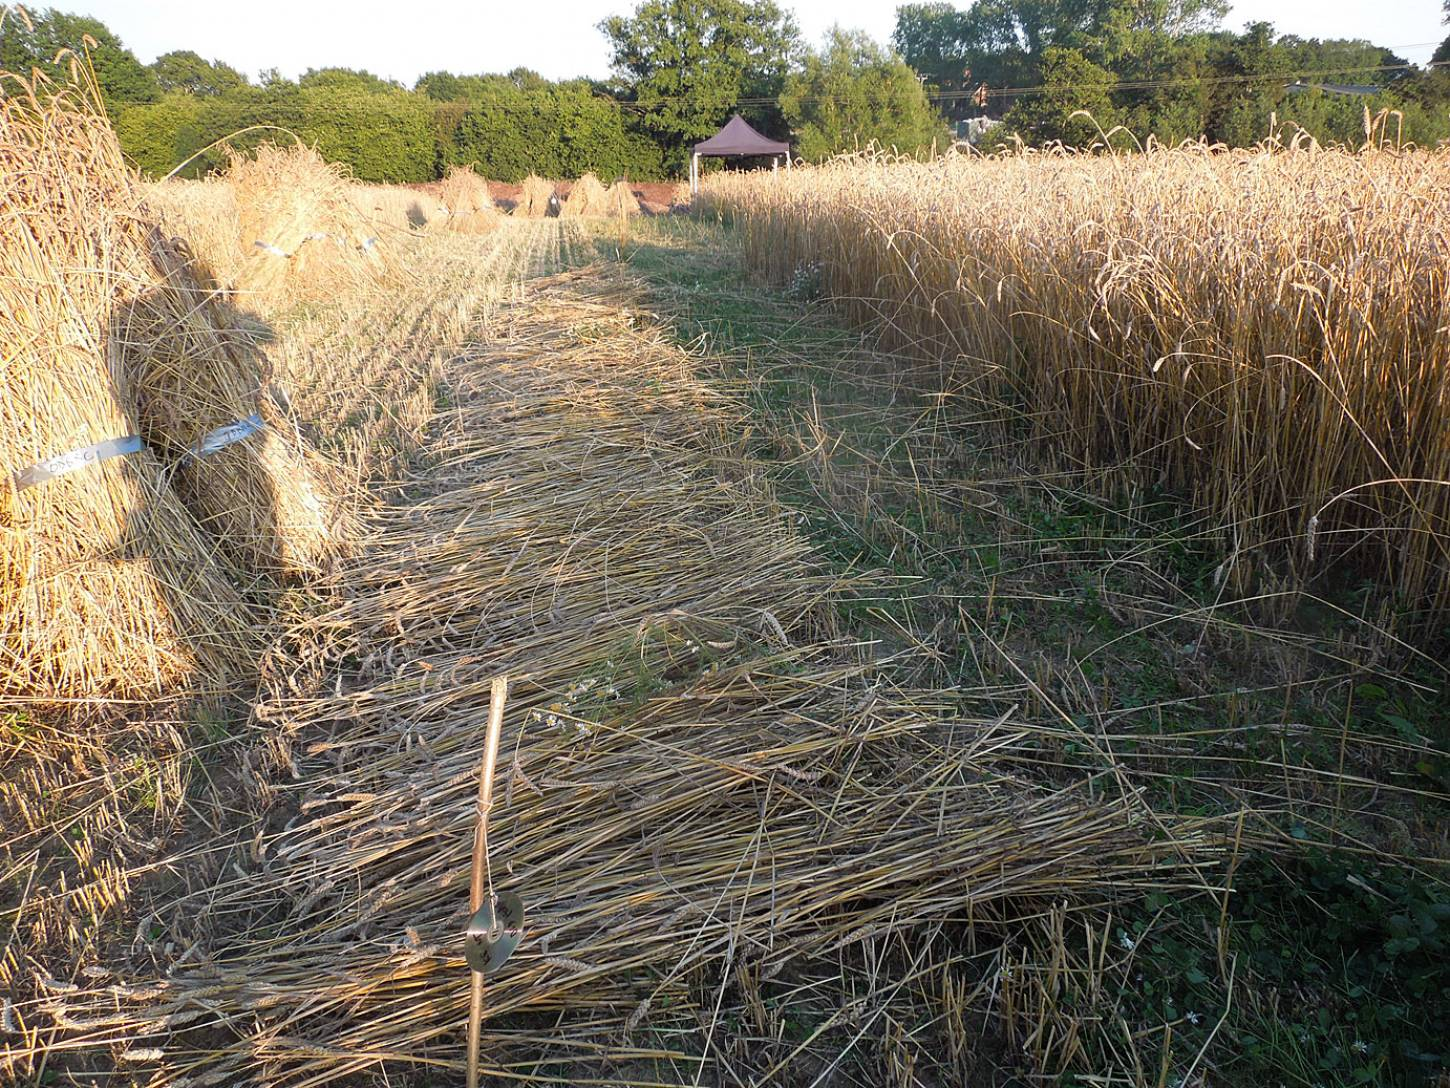 WoWo manual harvest- cutting with scythe and cradle, day #2 - 7:52pm&nbsp;7<sup>th</sup>&nbsp;Aug.&nbsp;'15